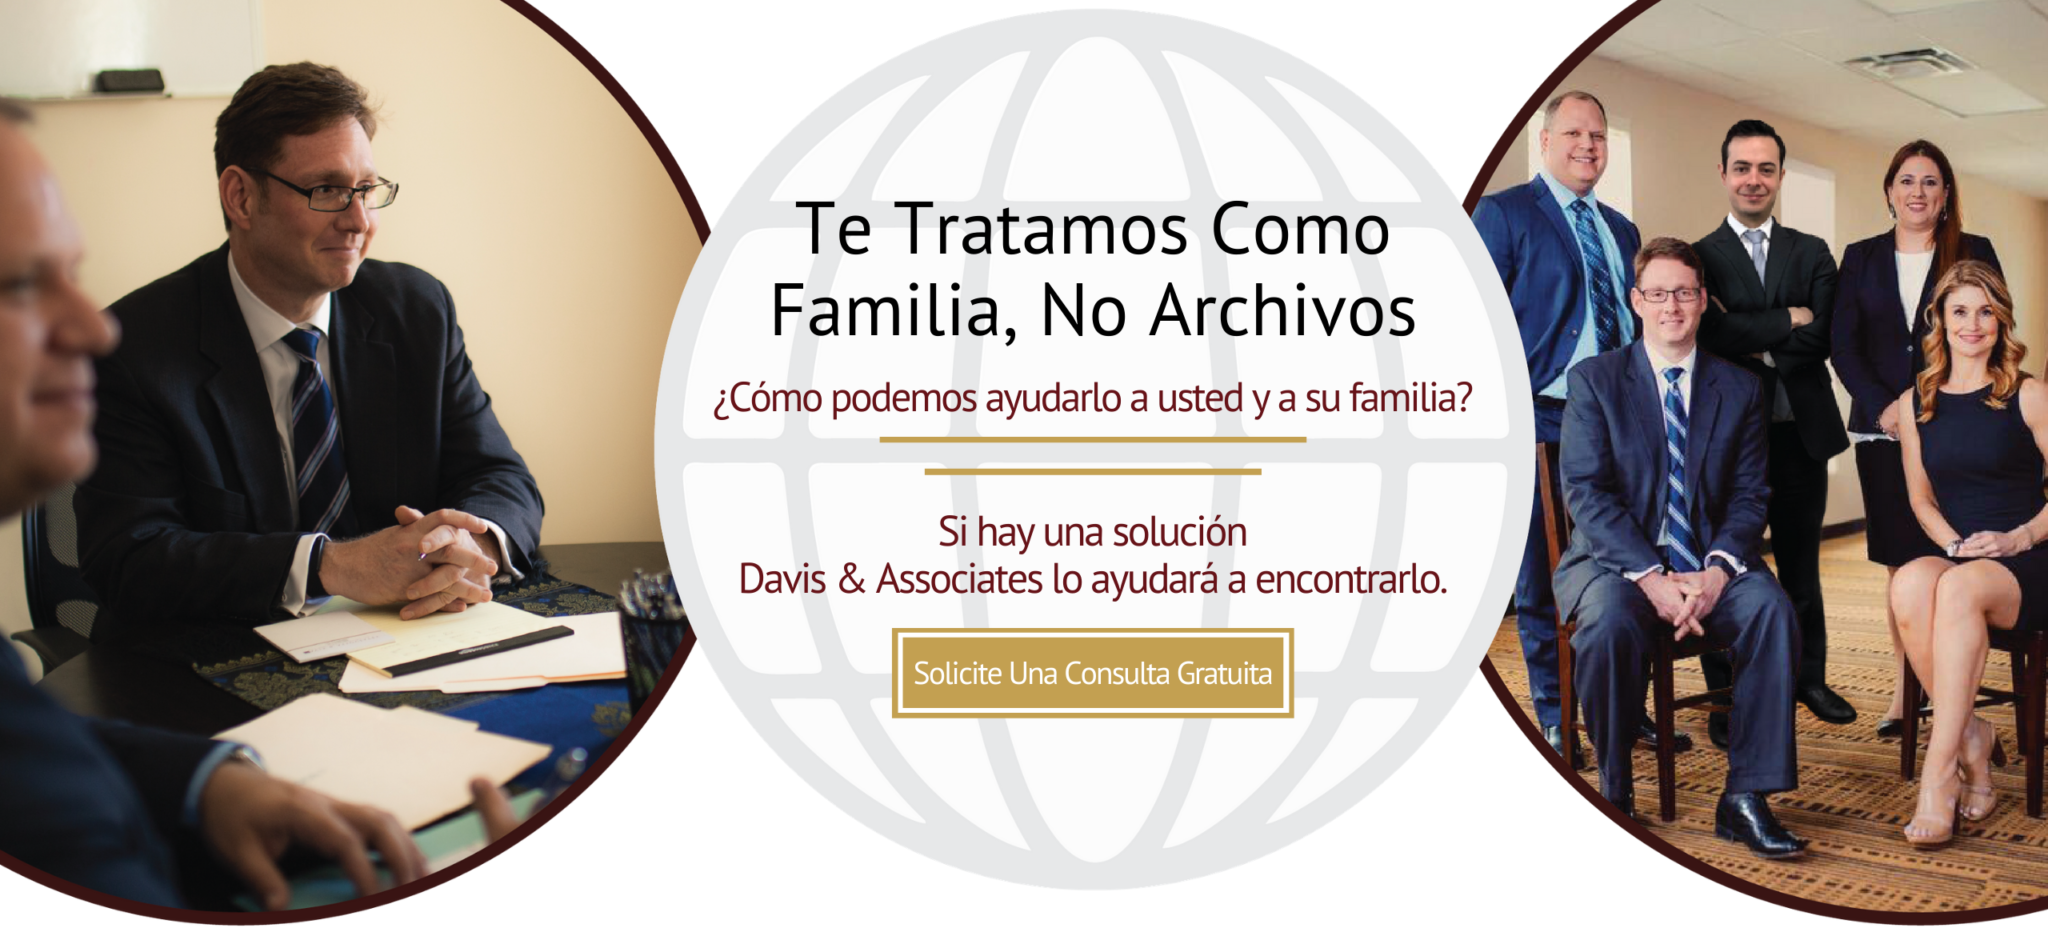 Abogados de inmigración en Dallas y Houston - Davis & Associates